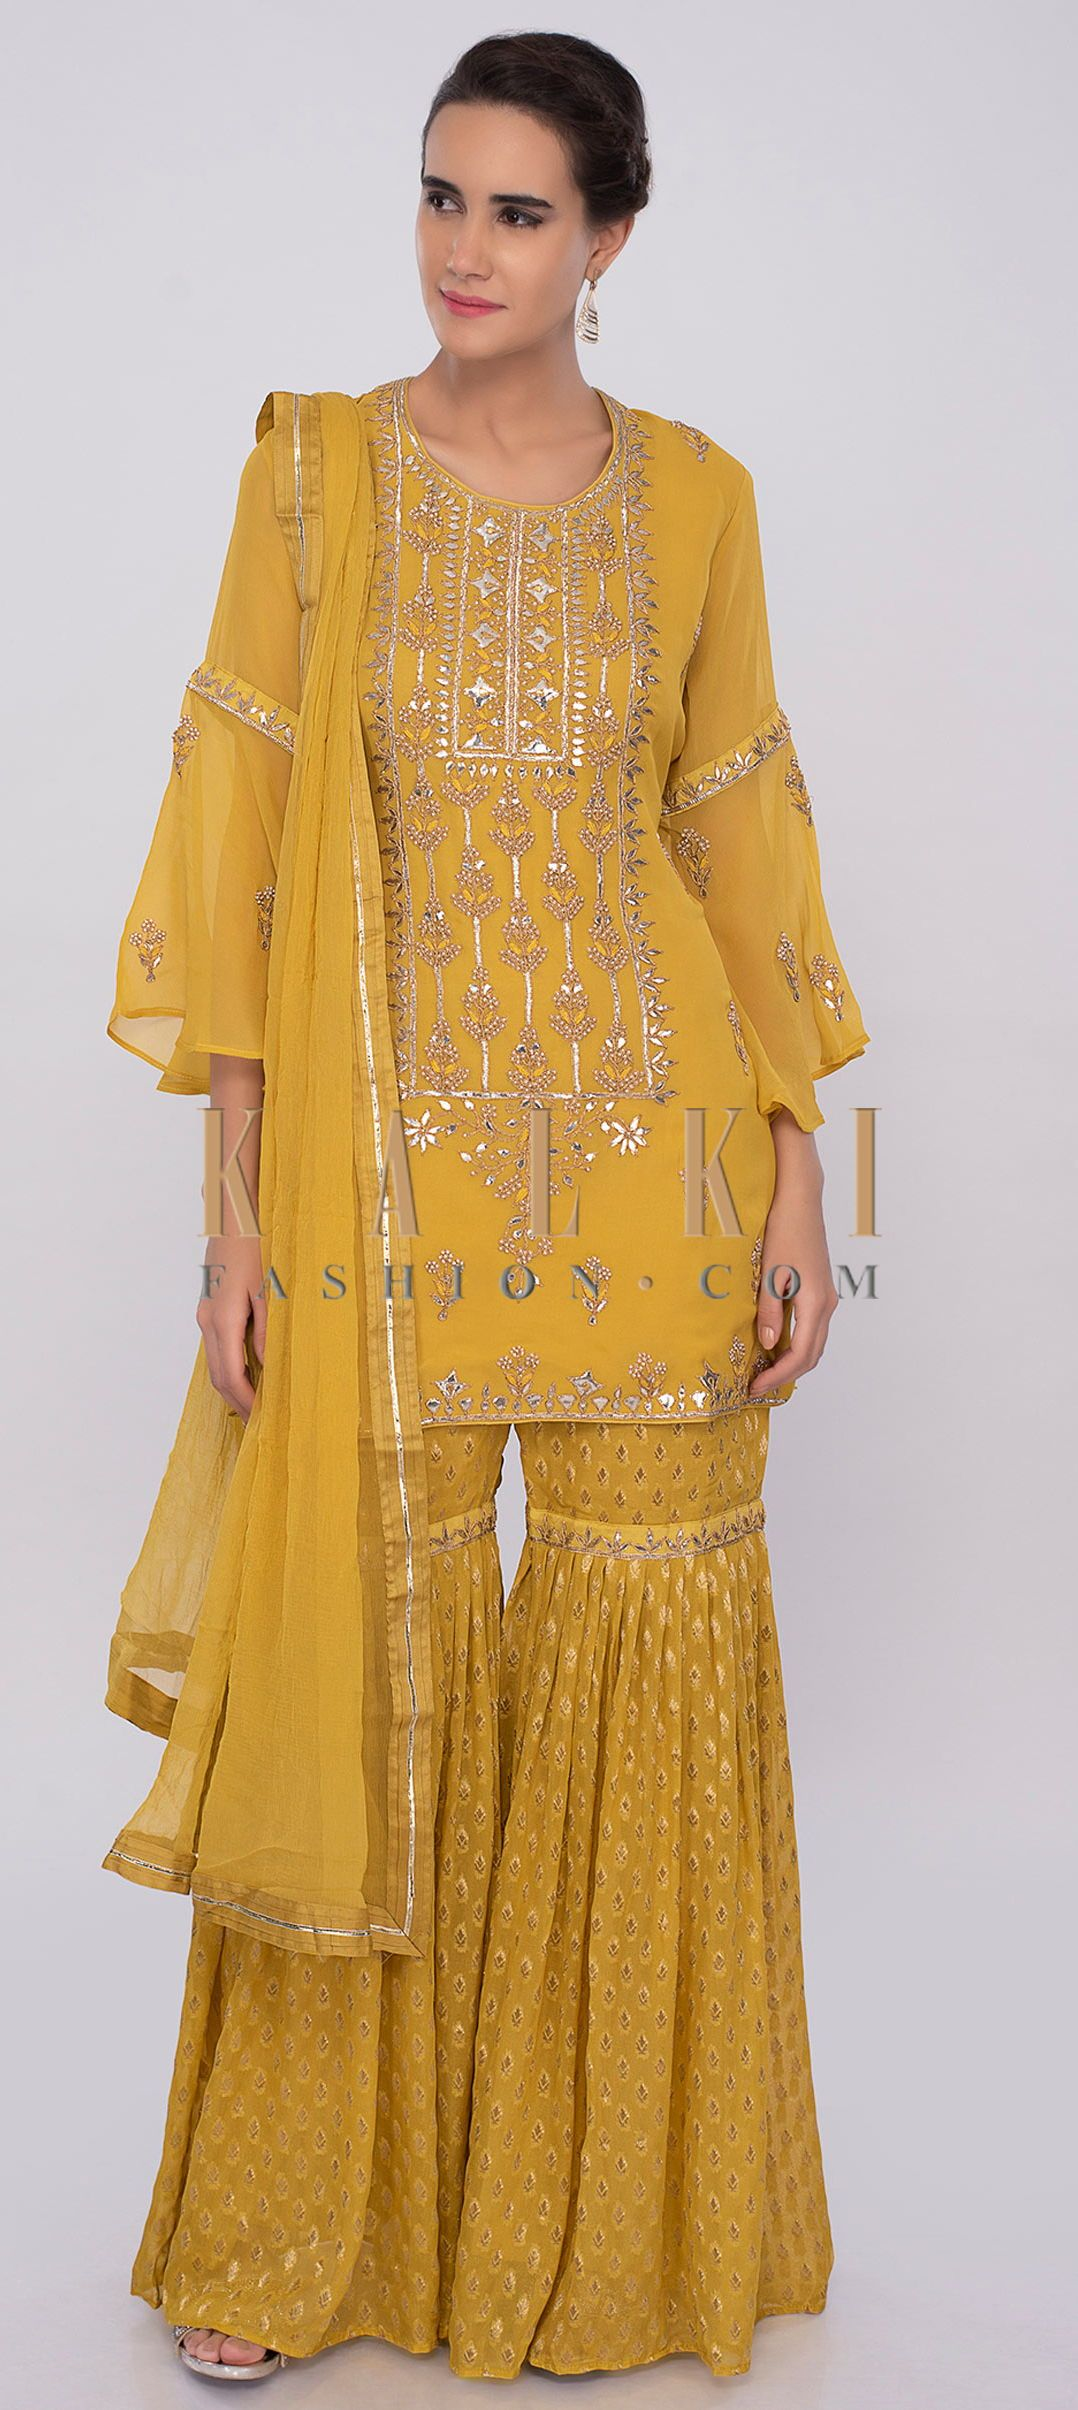 fffca6b3be We ship worldwide (Free Shipping over US$100) Click Anywhere to Tag Royal  yellow georgette sharara suit set with embroidery only on kalki Royal  yellow ...